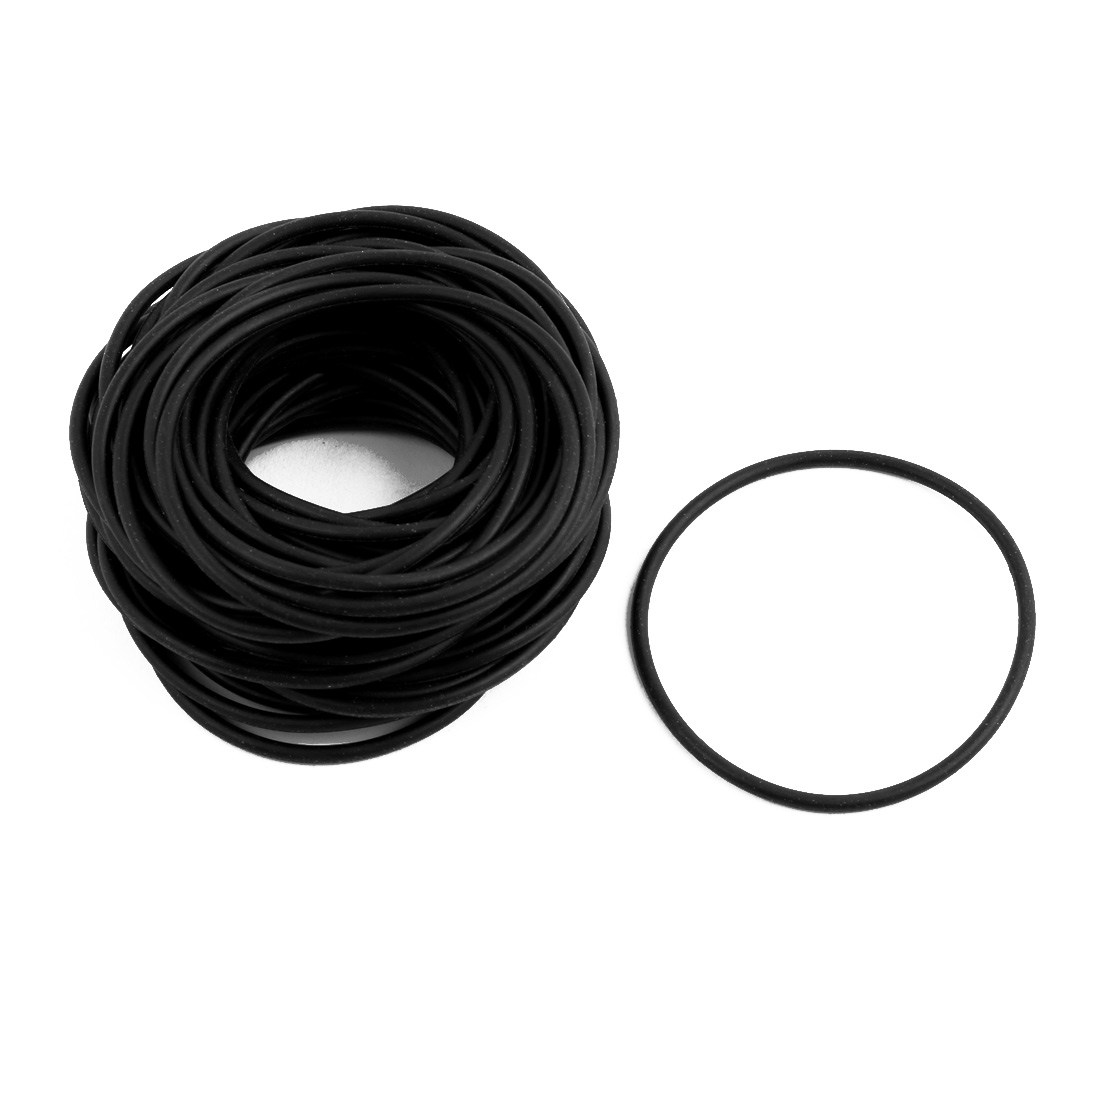 50Pcs 48mm x 1.9mm Black Flexible Nitrile Rubber O Ring Oil Seal Washer Grommets